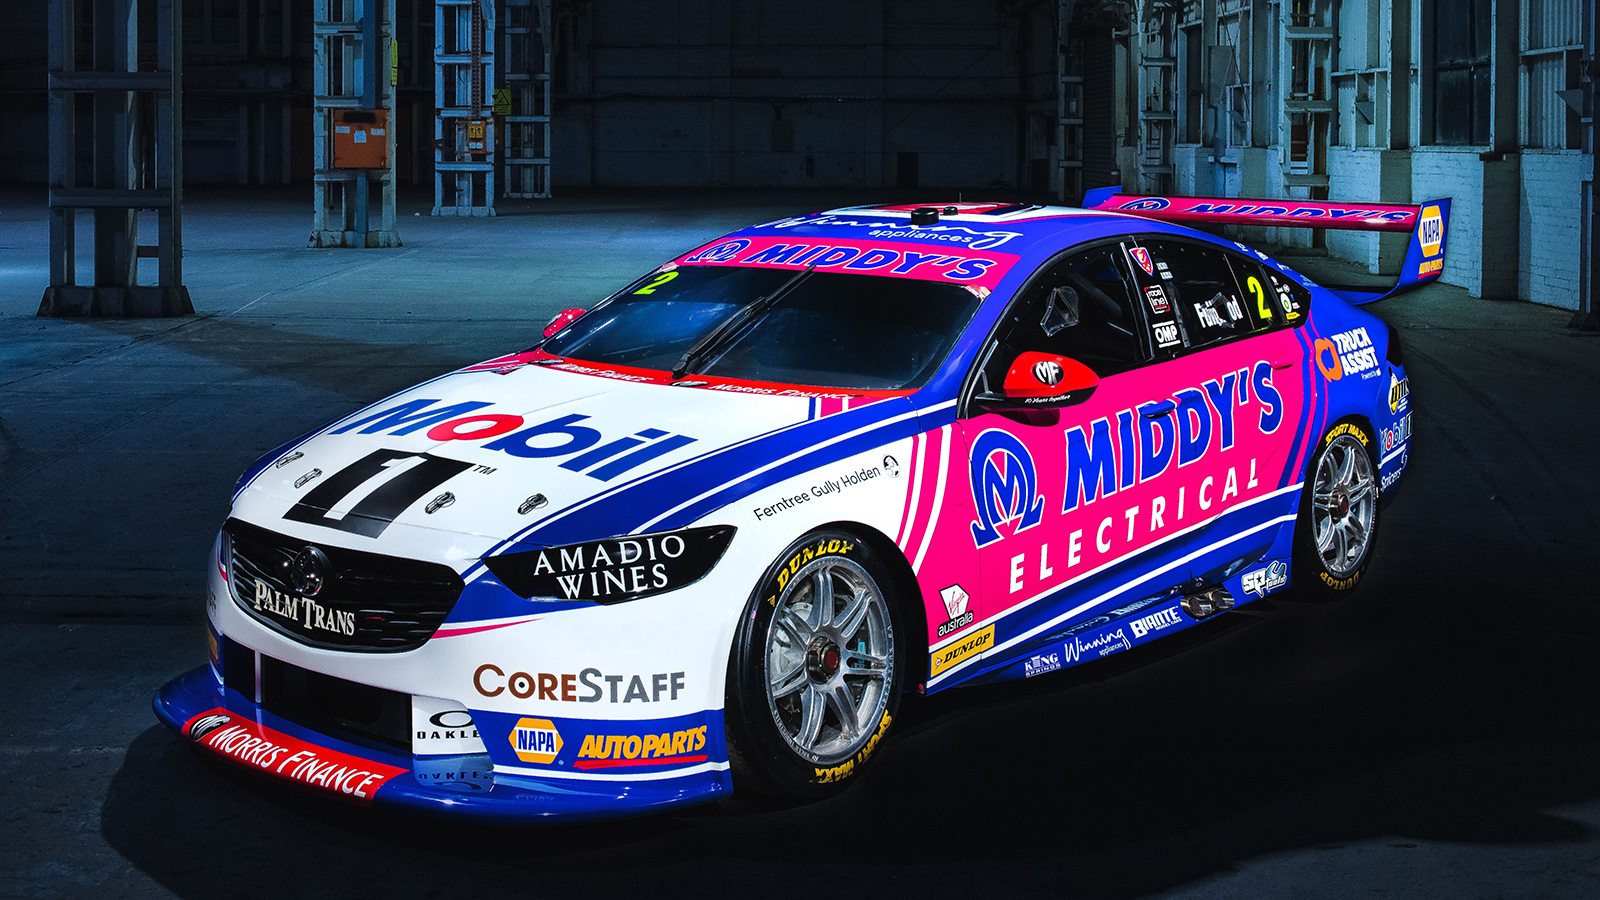 Mobil 1 Middy's Racing Livery Breaks Cover